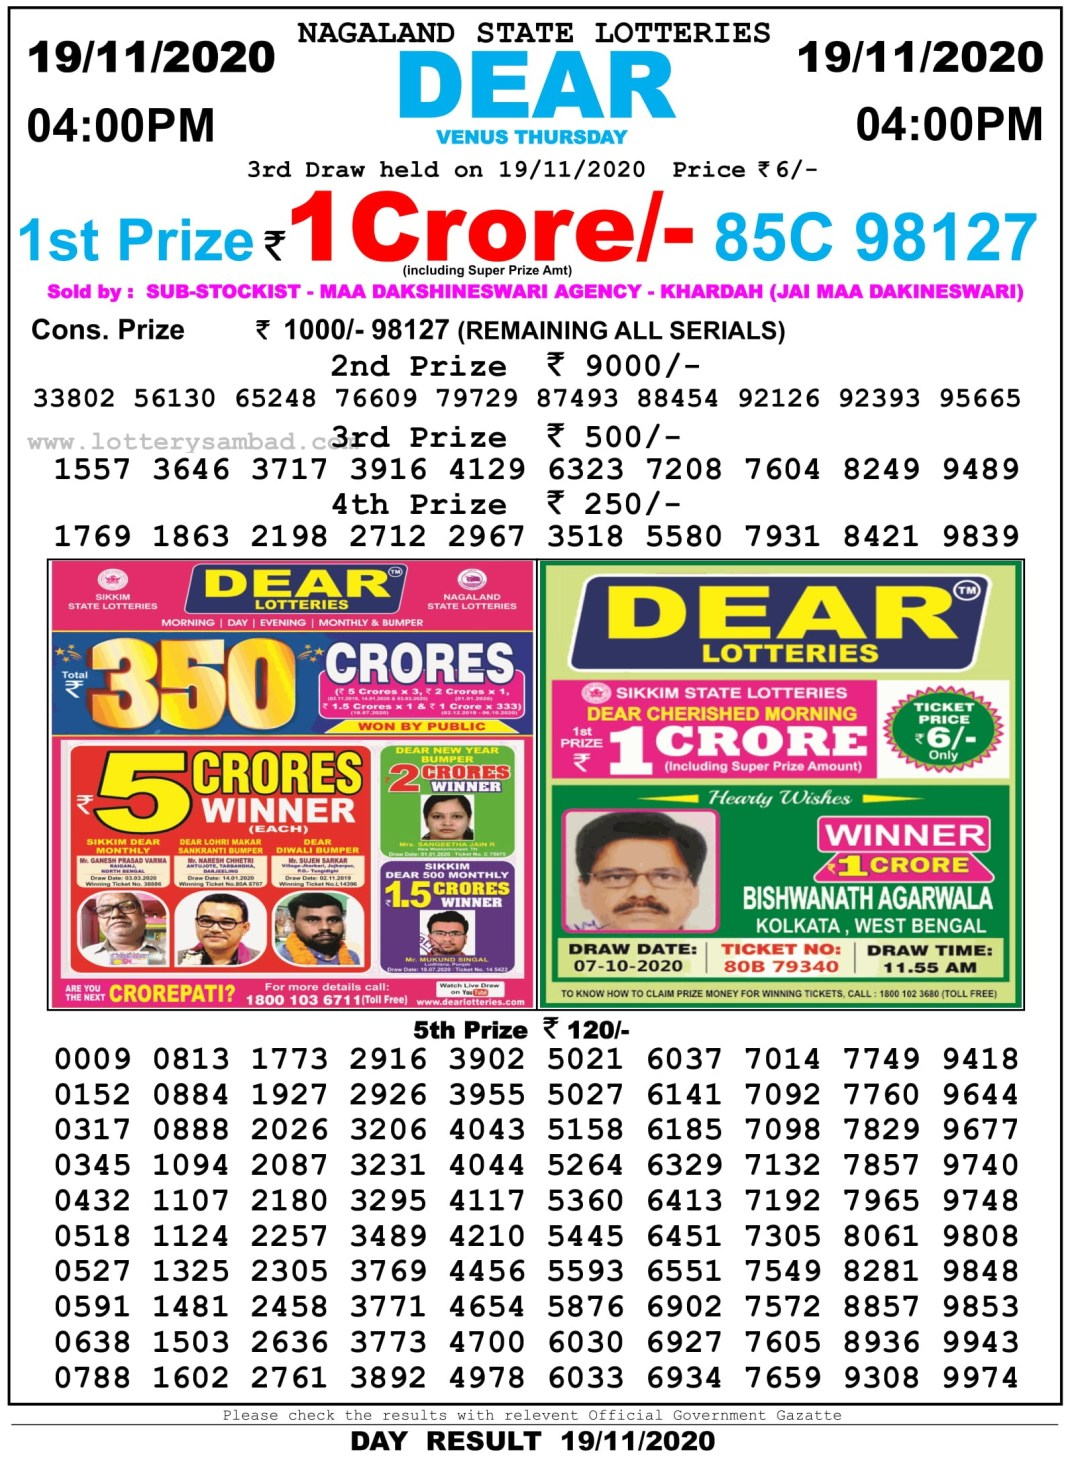 Nagaland State Lottery Result 4 PM 19.11.2020